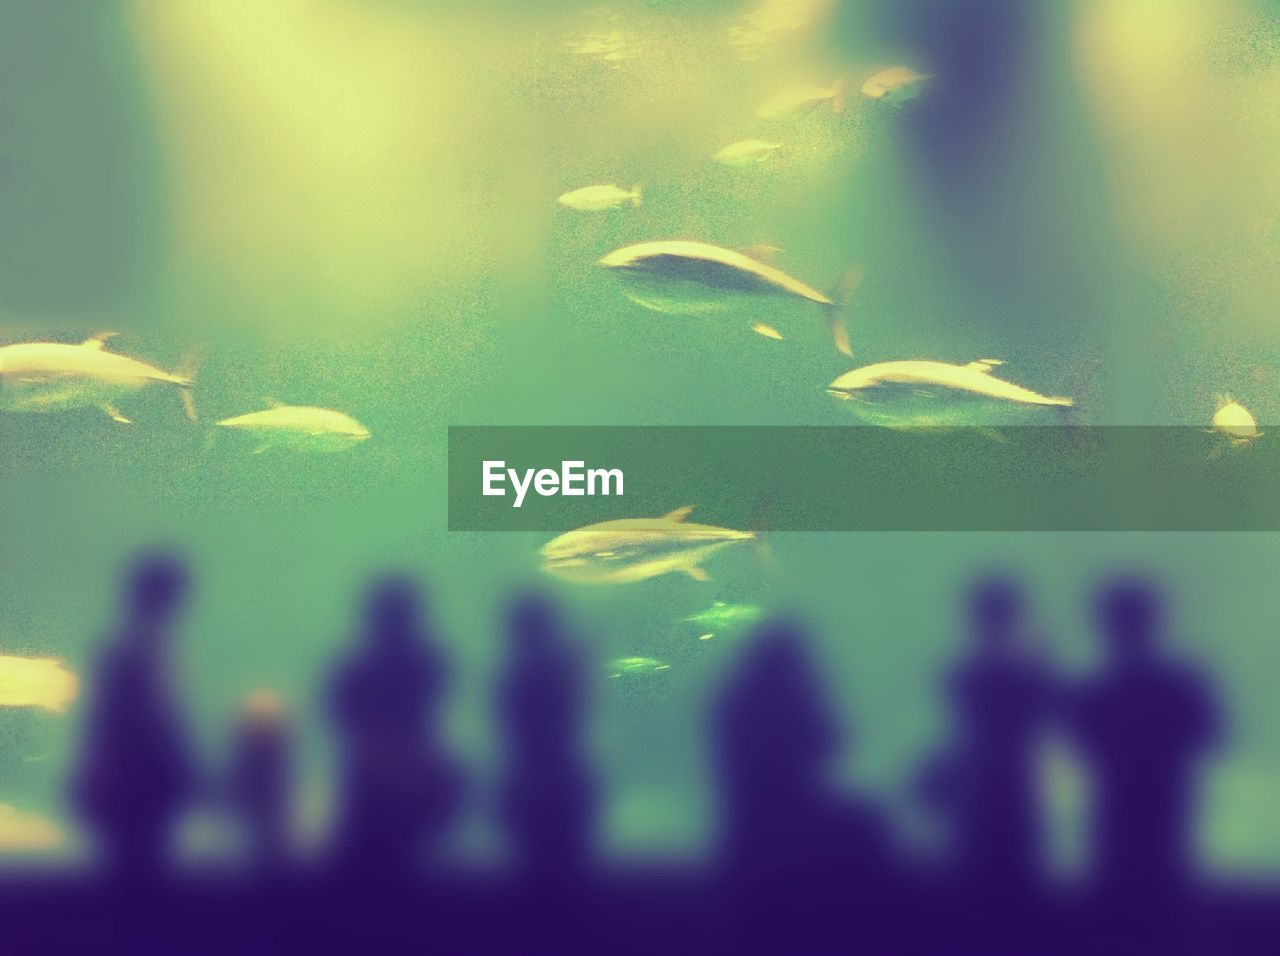 water, swimming, sea life, fish, aquarium, animal themes, underwater, animals in the wild, silhouette, nature, large group of animals, animals in captivity, indoors, beauty in nature, backgrounds, no people, close-up, day, undersea